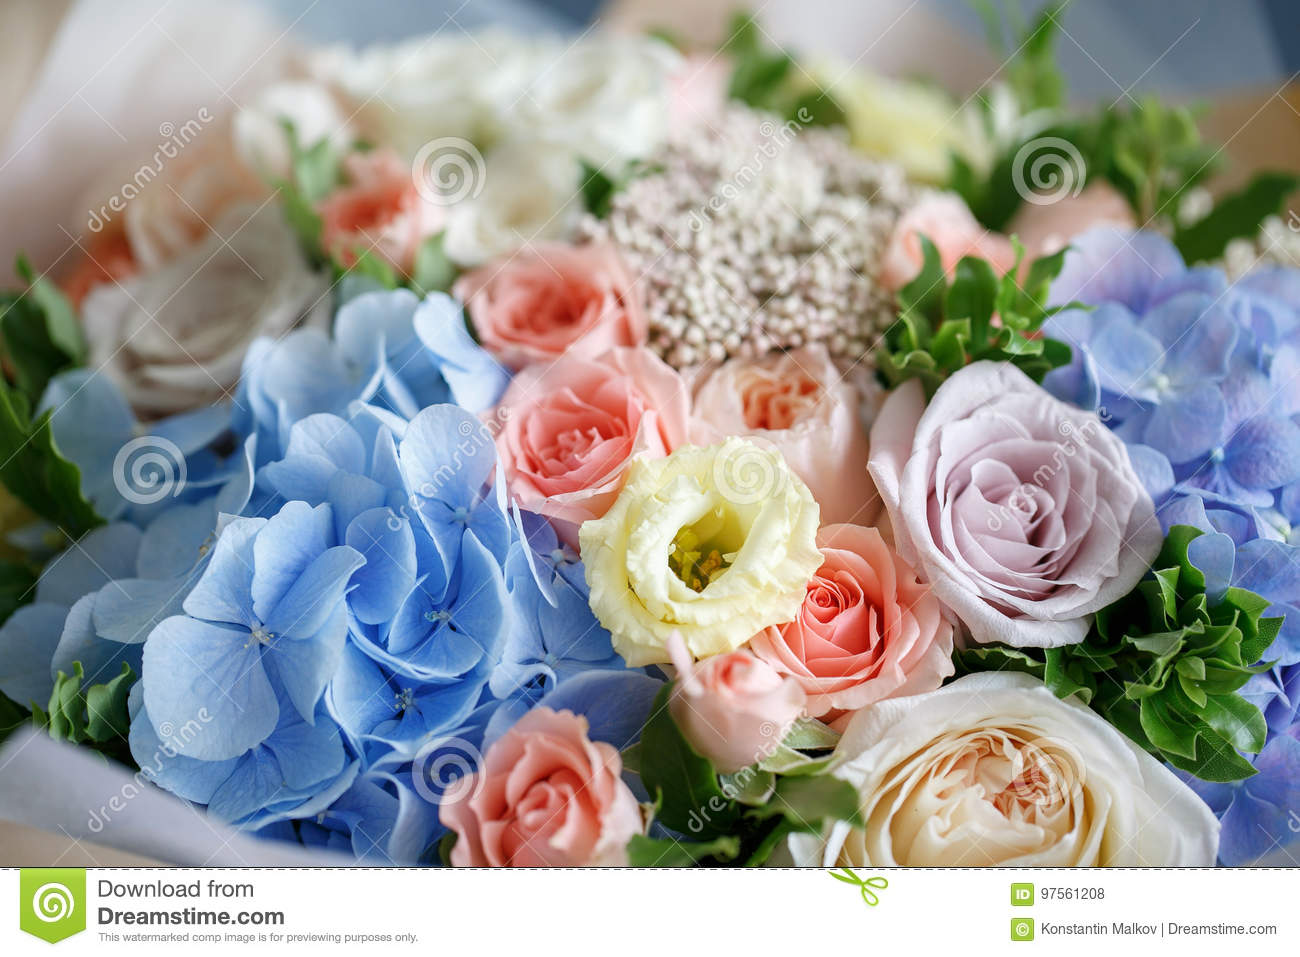 Beautiful bouquet made of different flowers on grey background download beautiful bouquet made of different flowers on grey background colorful color mix flower izmirmasajfo